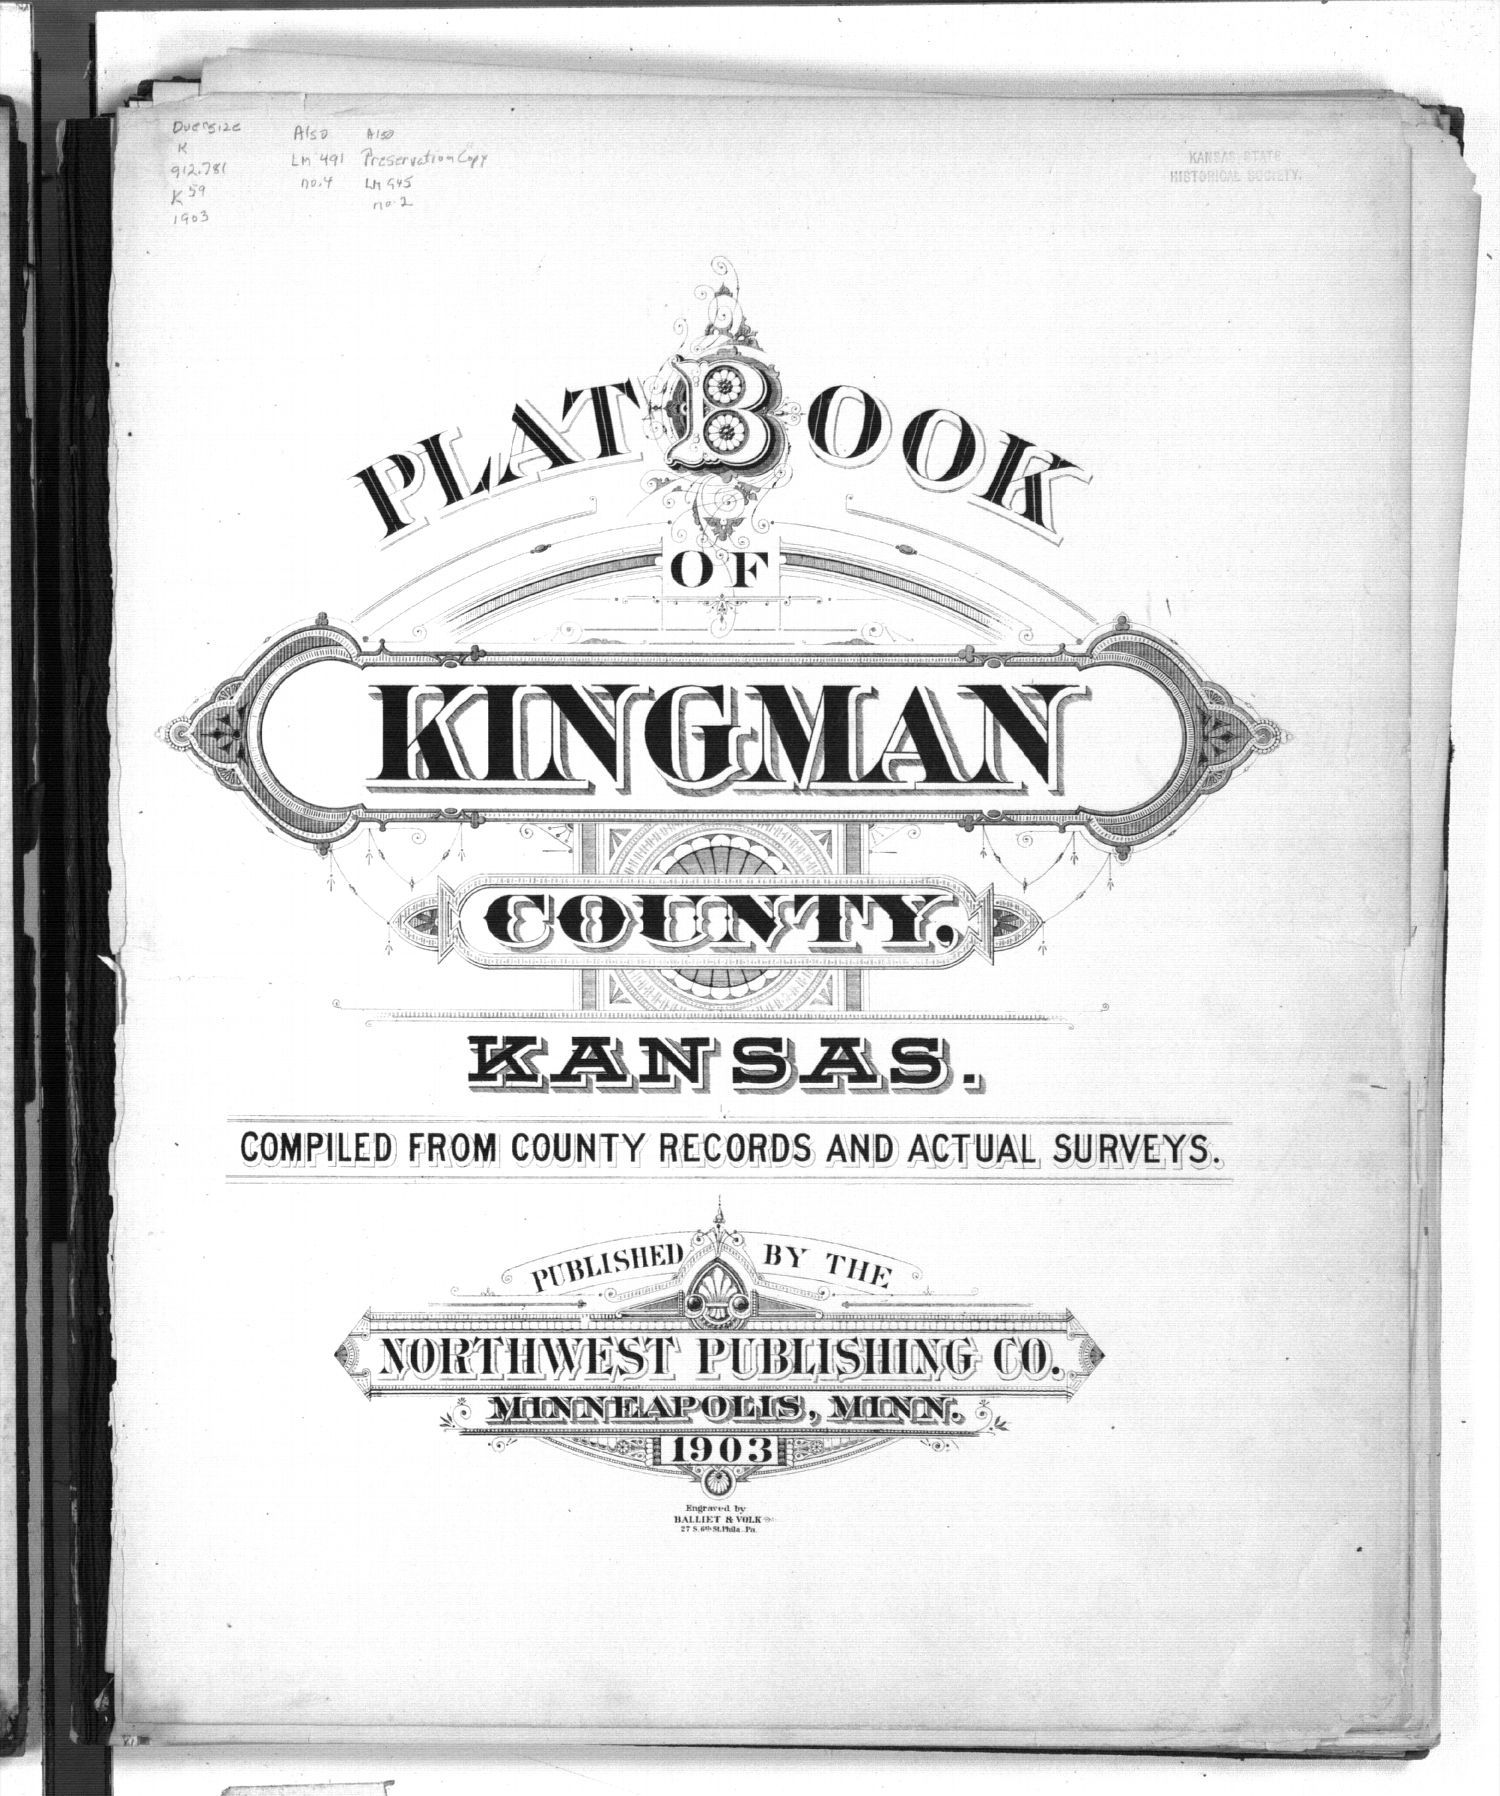 Plat book of Kingman County, Kansas - Title Page